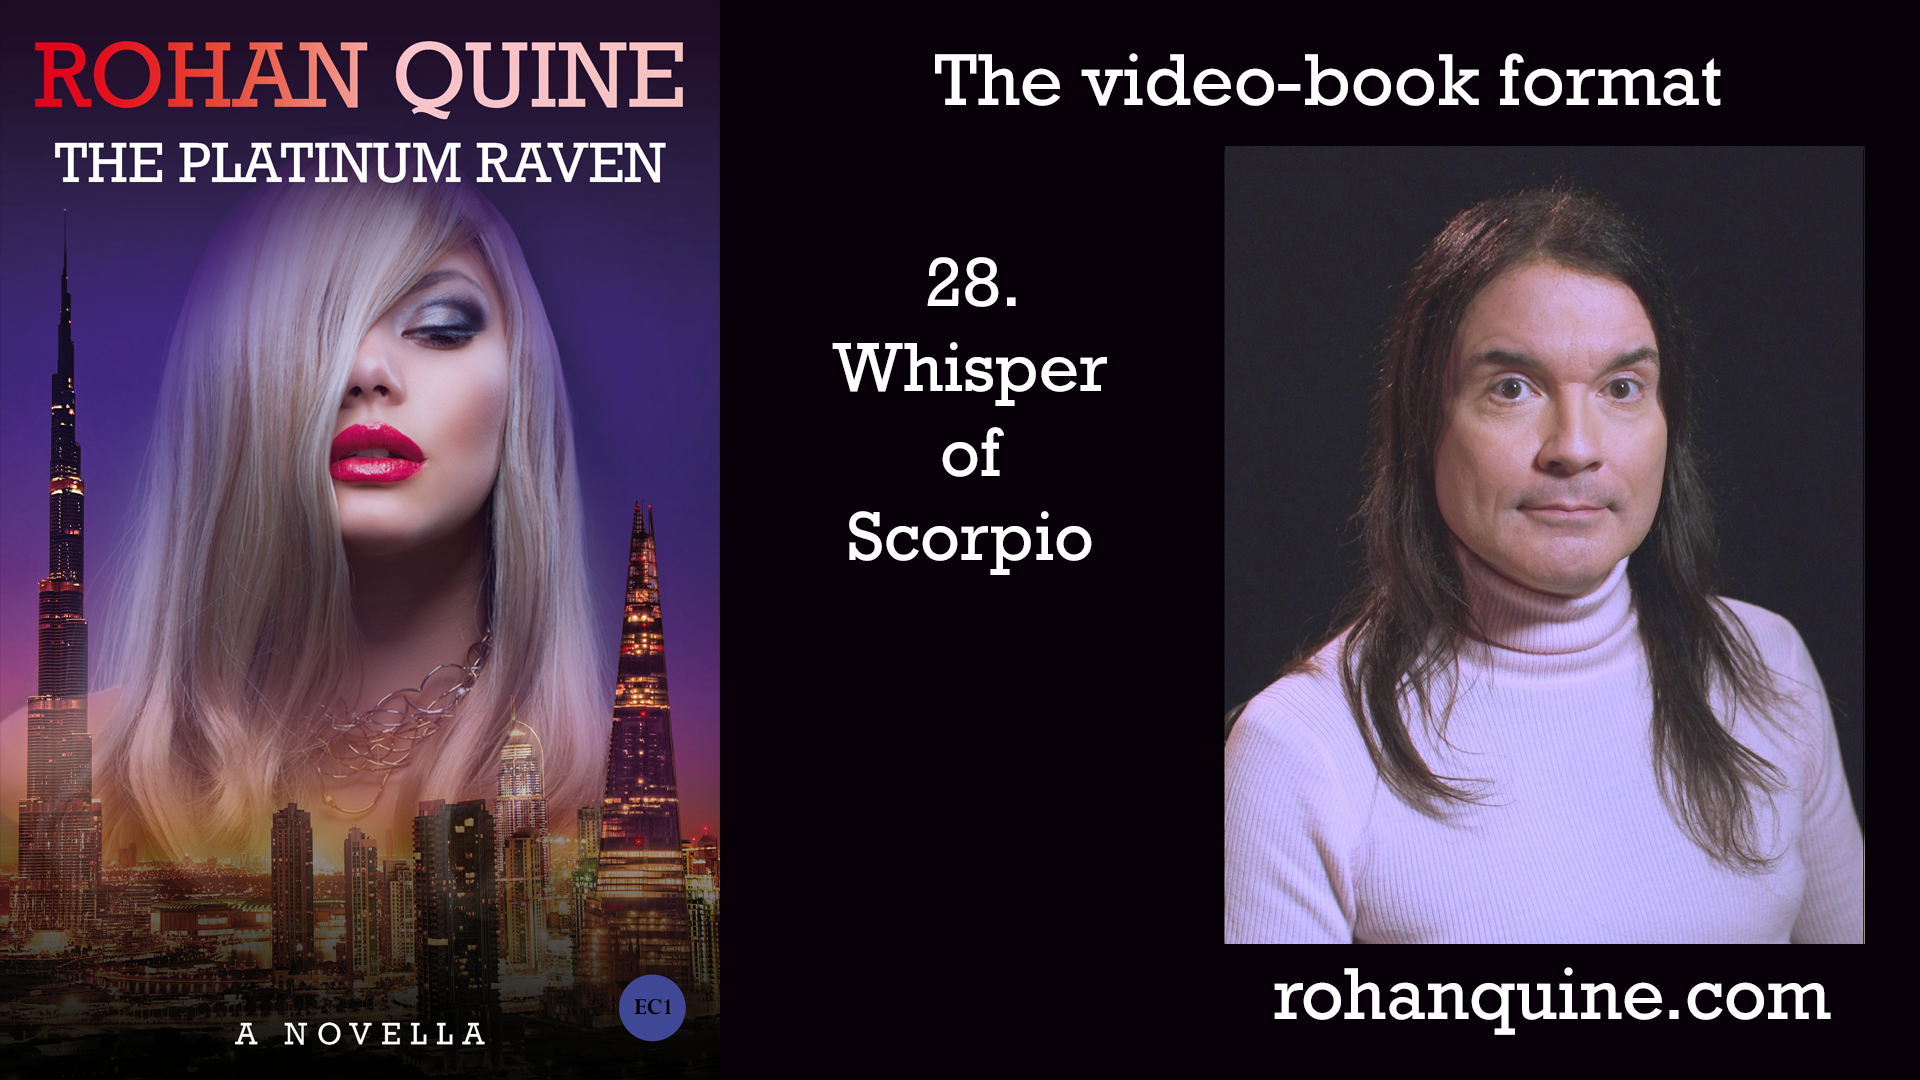 THE PLATINUM RAVEN by Rohan Quine - video-book format - chapter 28